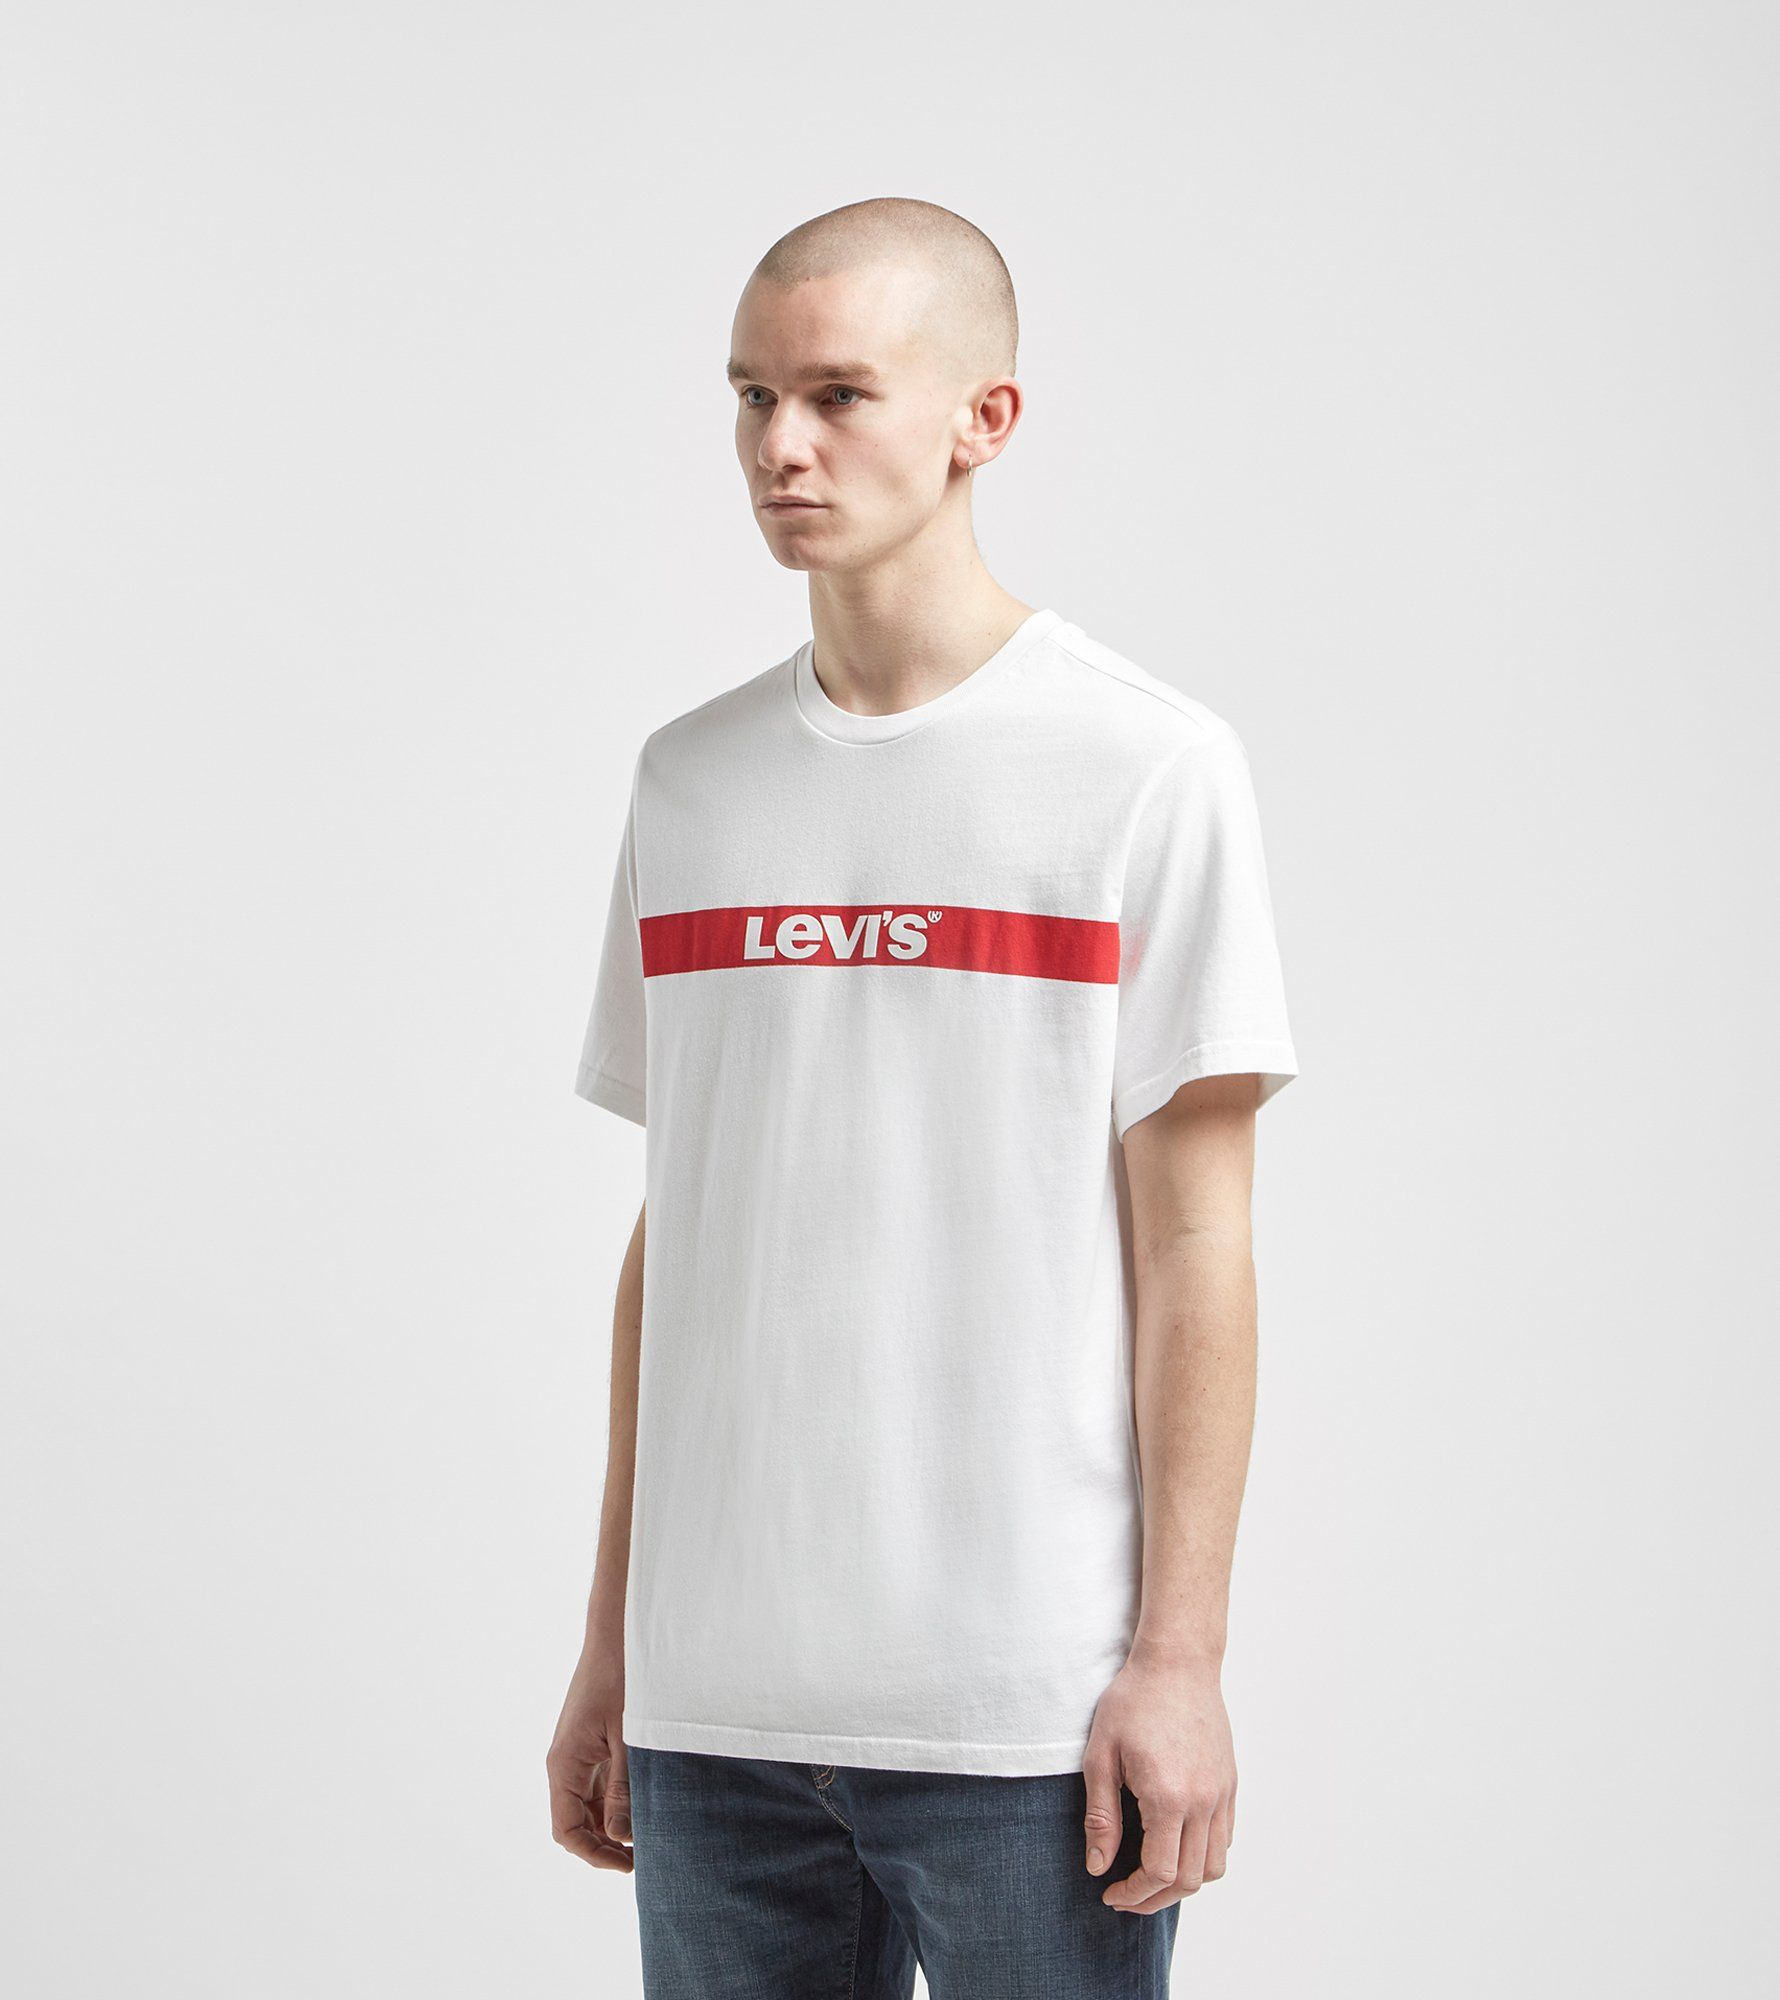 Levis Oversized Bar Logo Short Sleeve T-Shirt